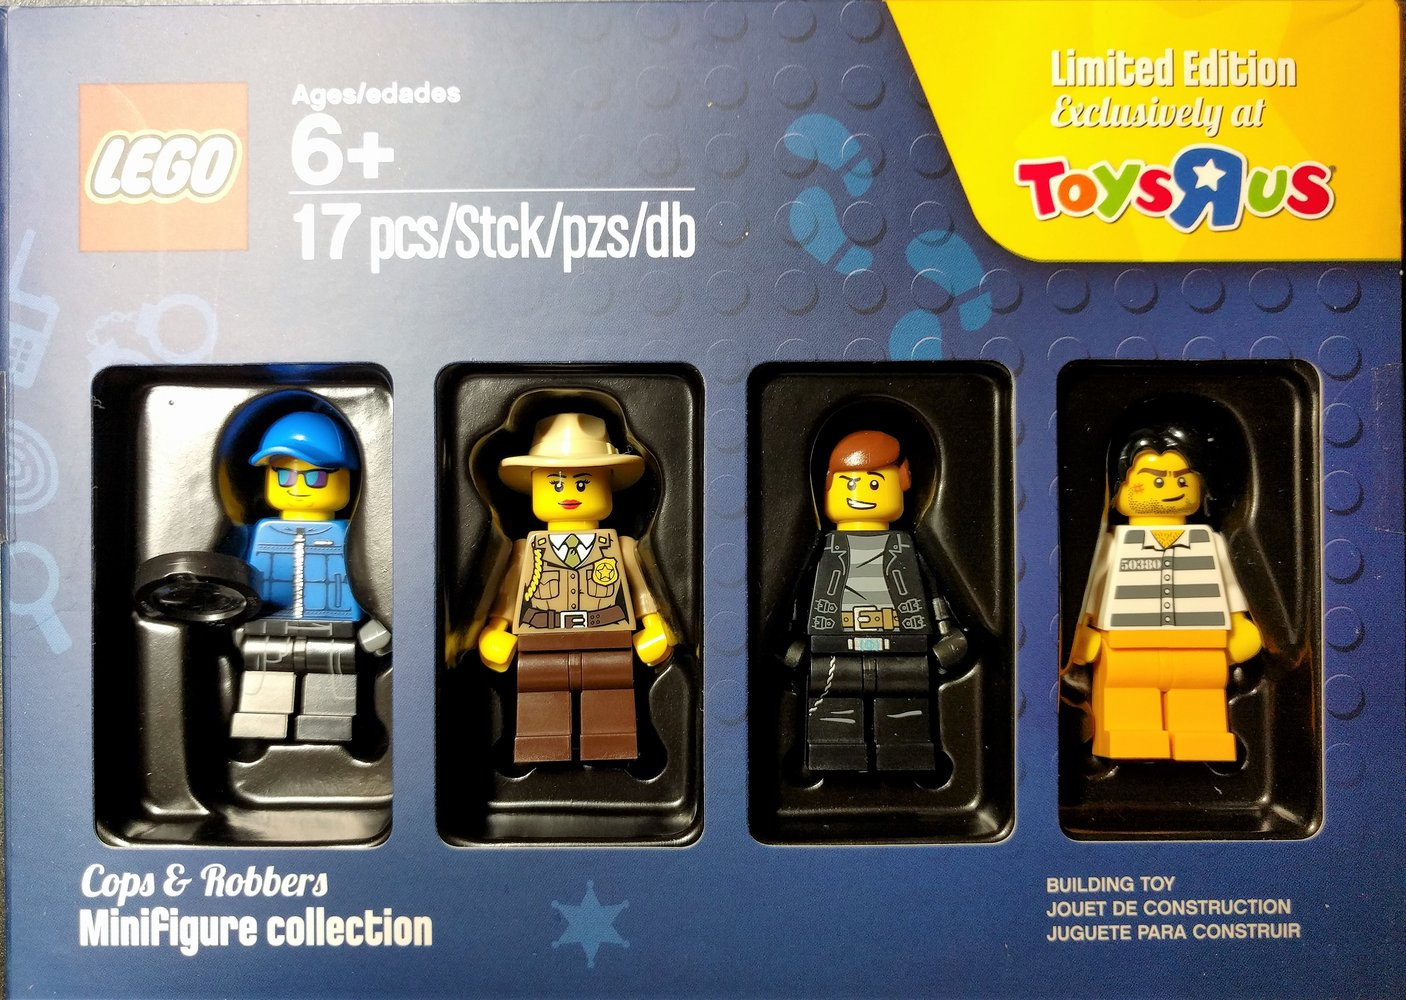 Cops & Robbers Minifigure collection